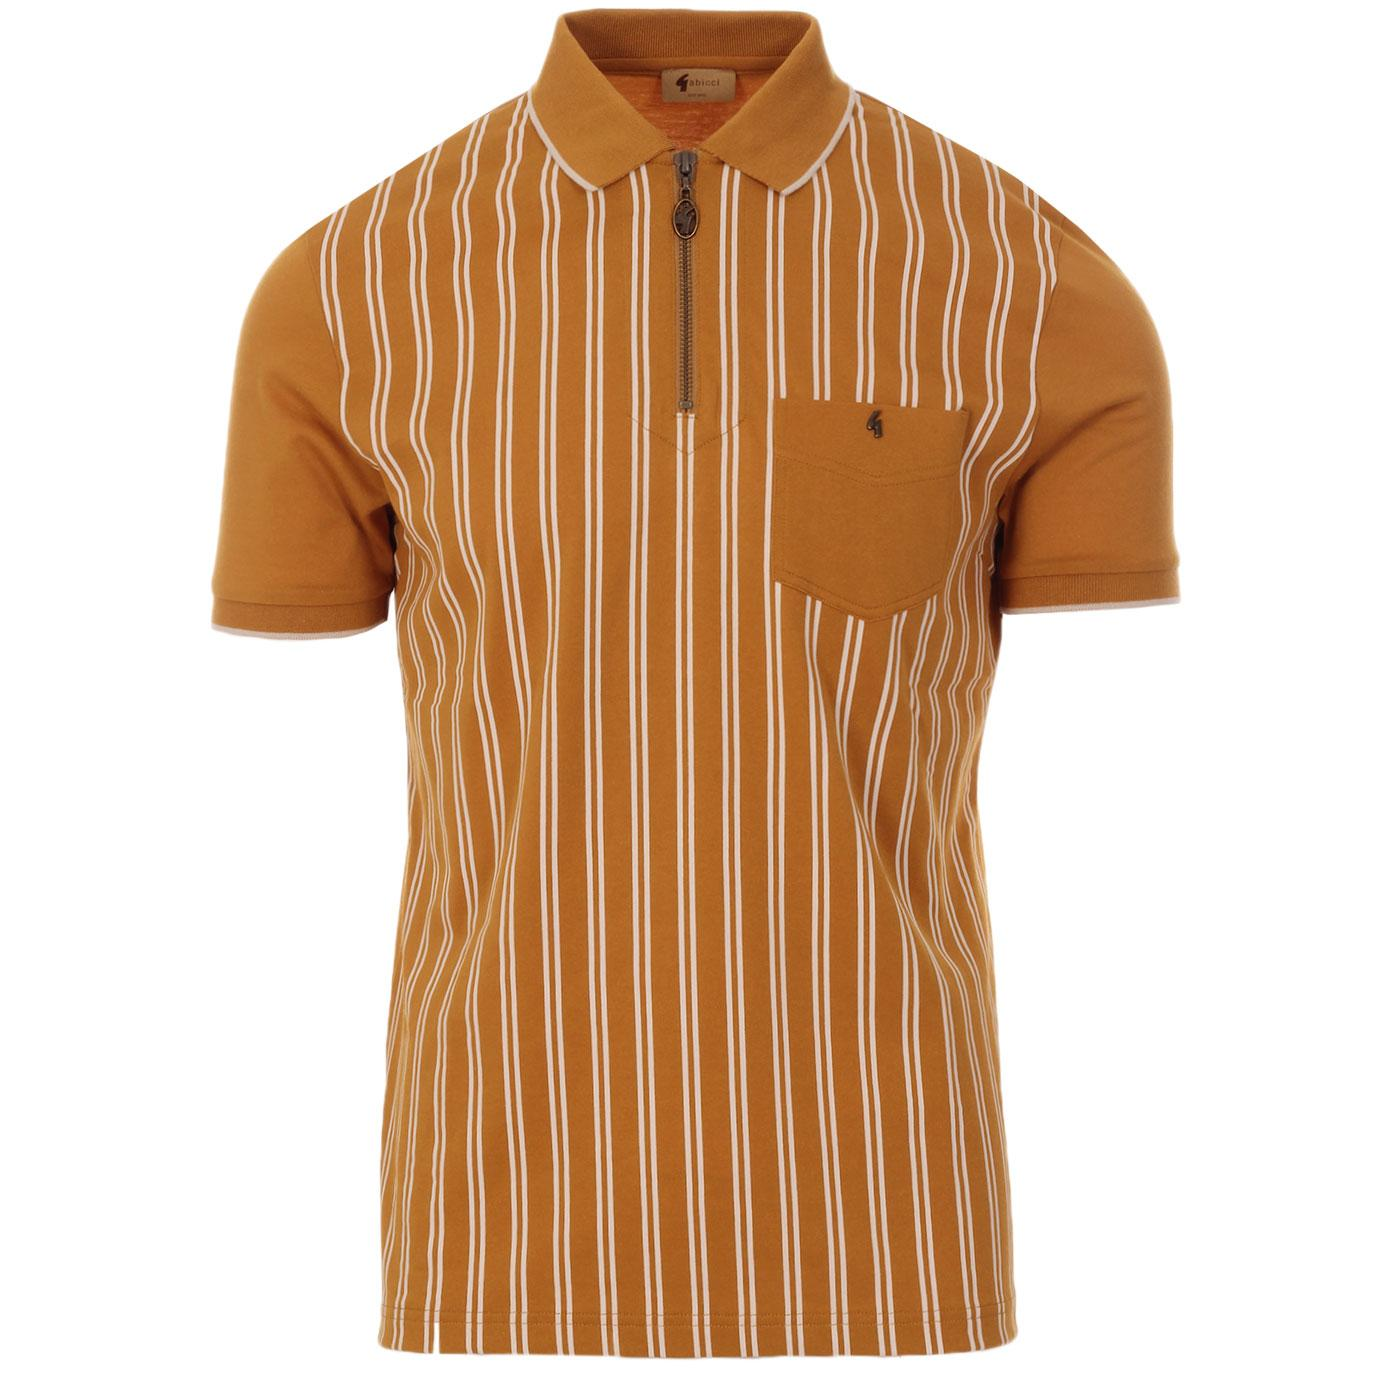 Solomon GABICCI VINTAGE Mod Stripe Zip Neck Polo H